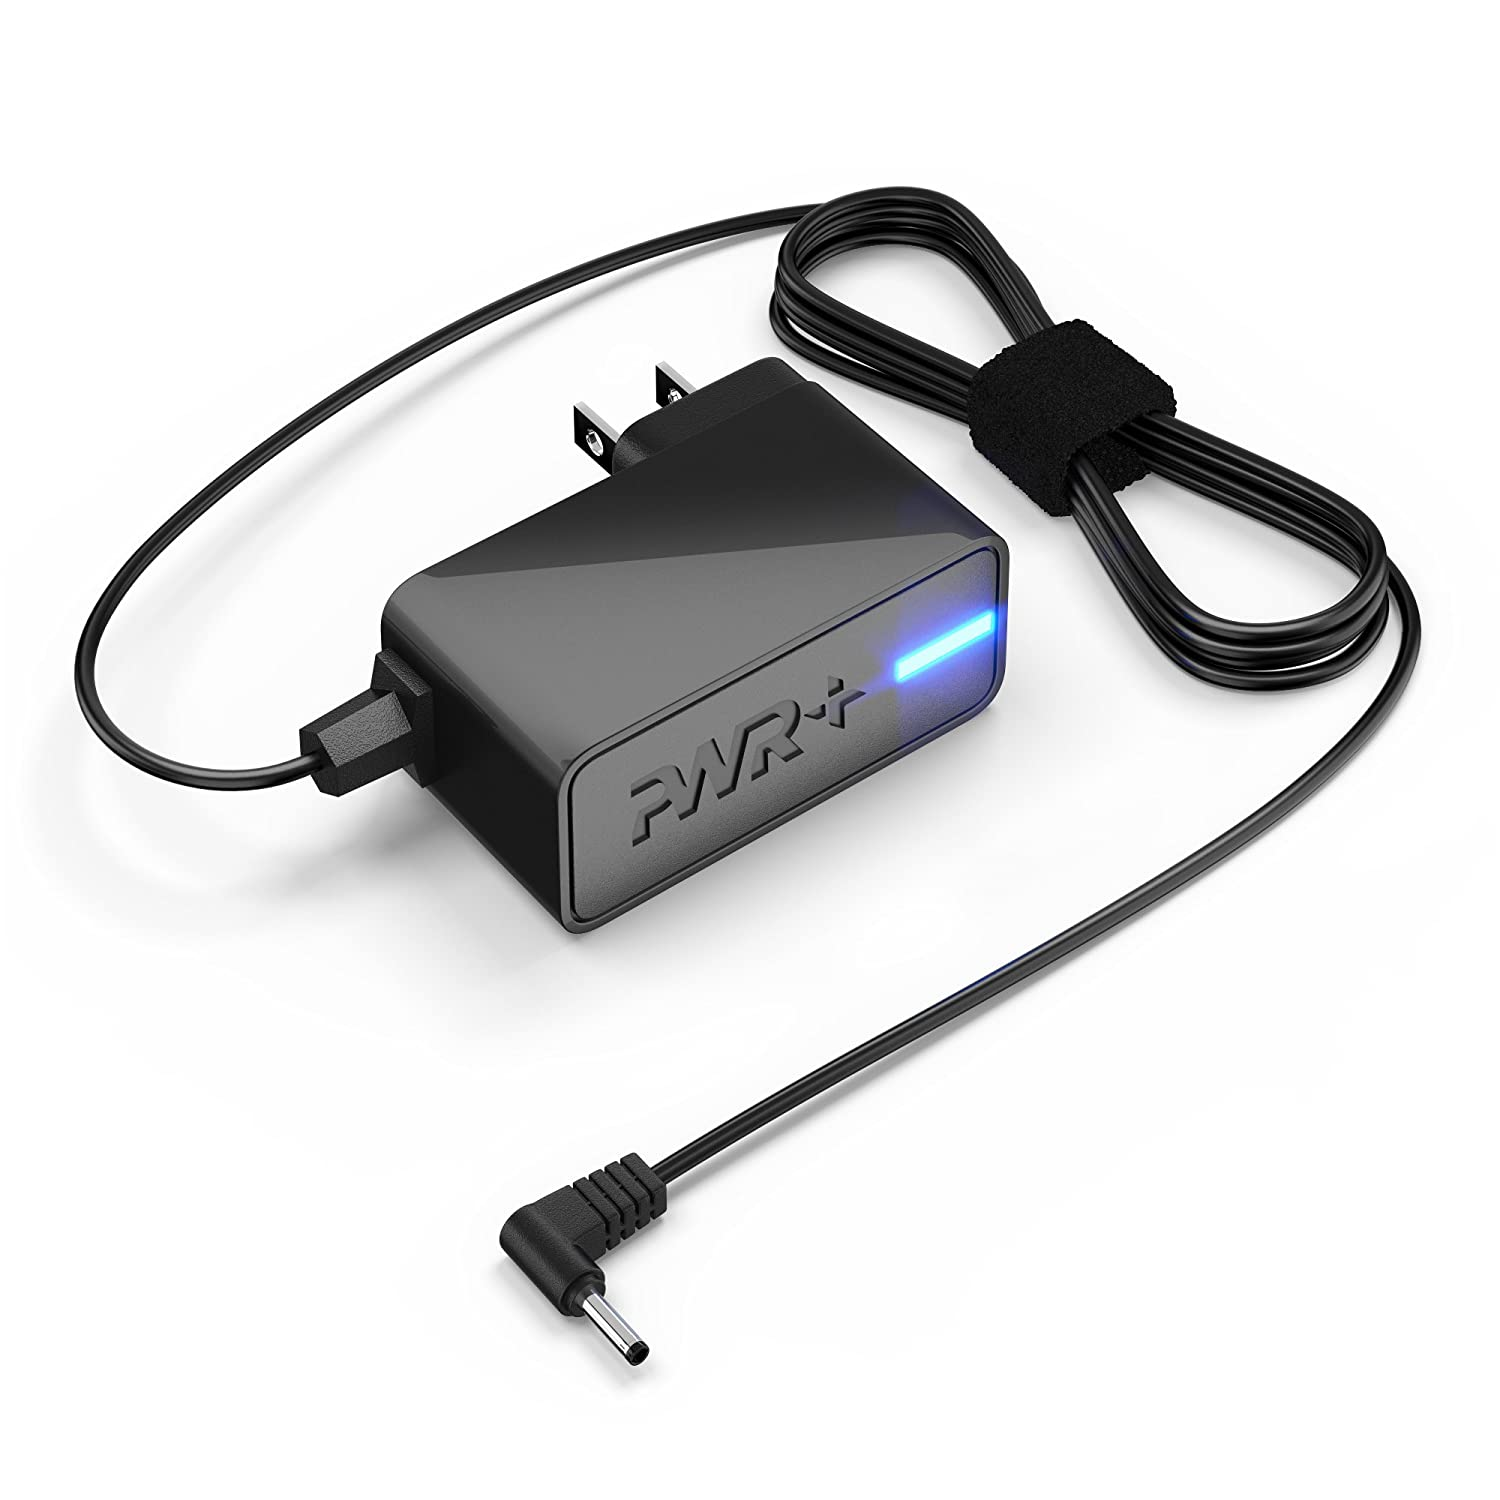 Amazon.com: Pwr+ UL Listed 12V Charger for Acer Aspire-Switch SW5-012  SW5-015 SW5-011; Acer-Iconia A100 A200 A210 A500 A501 W3 W3-810  Ak.018ap.040 ...